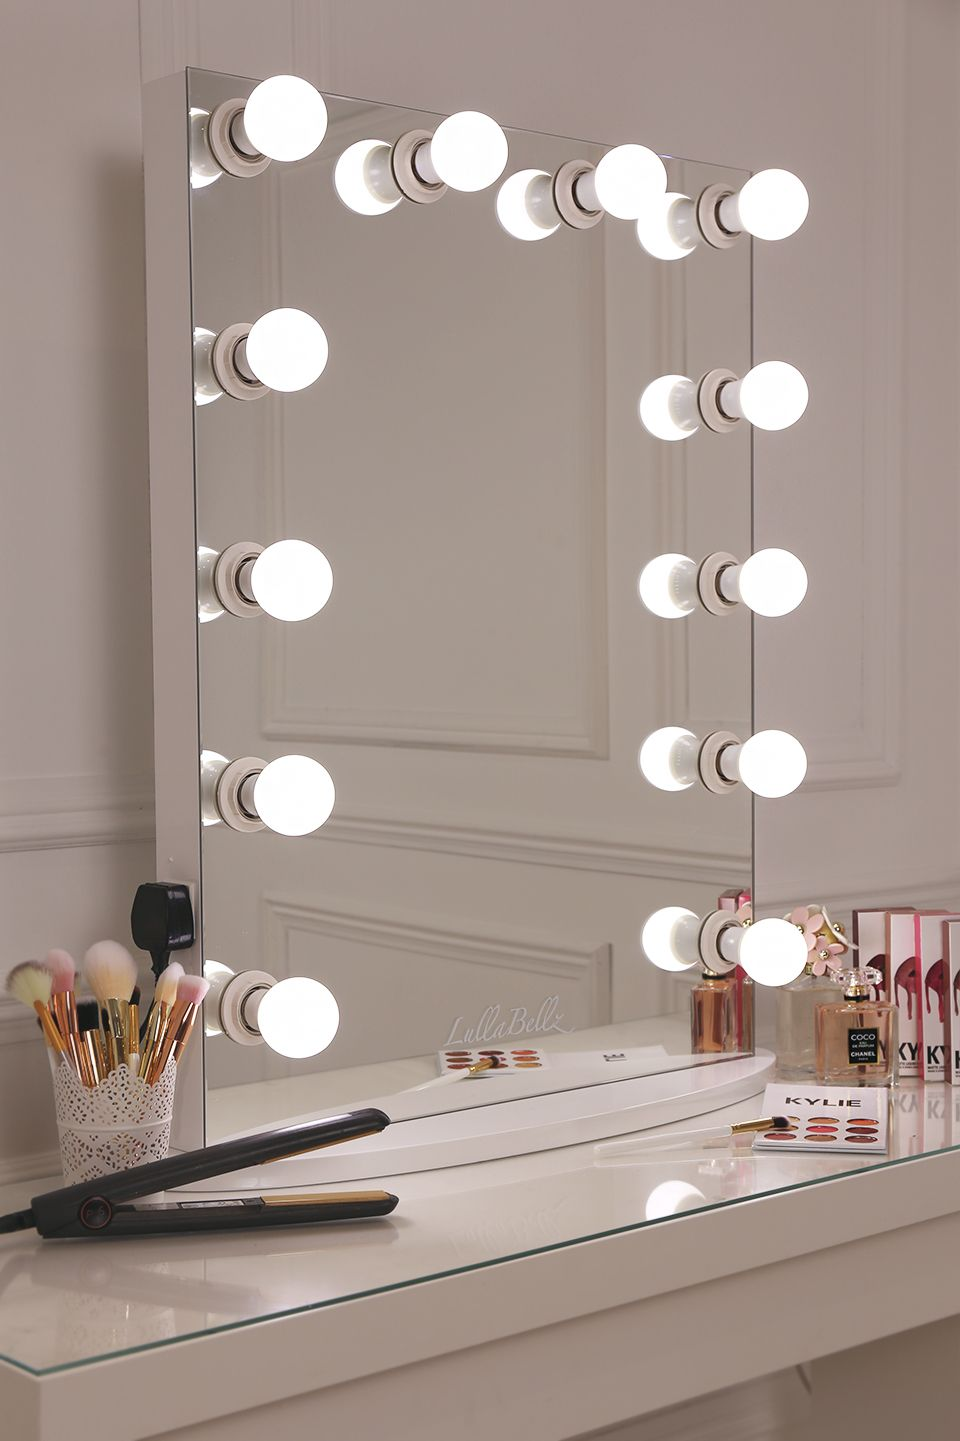 Diy Vanity Mirror With Lights For Bathroom And Makeup Station  # Muebles Dayer Esperanza